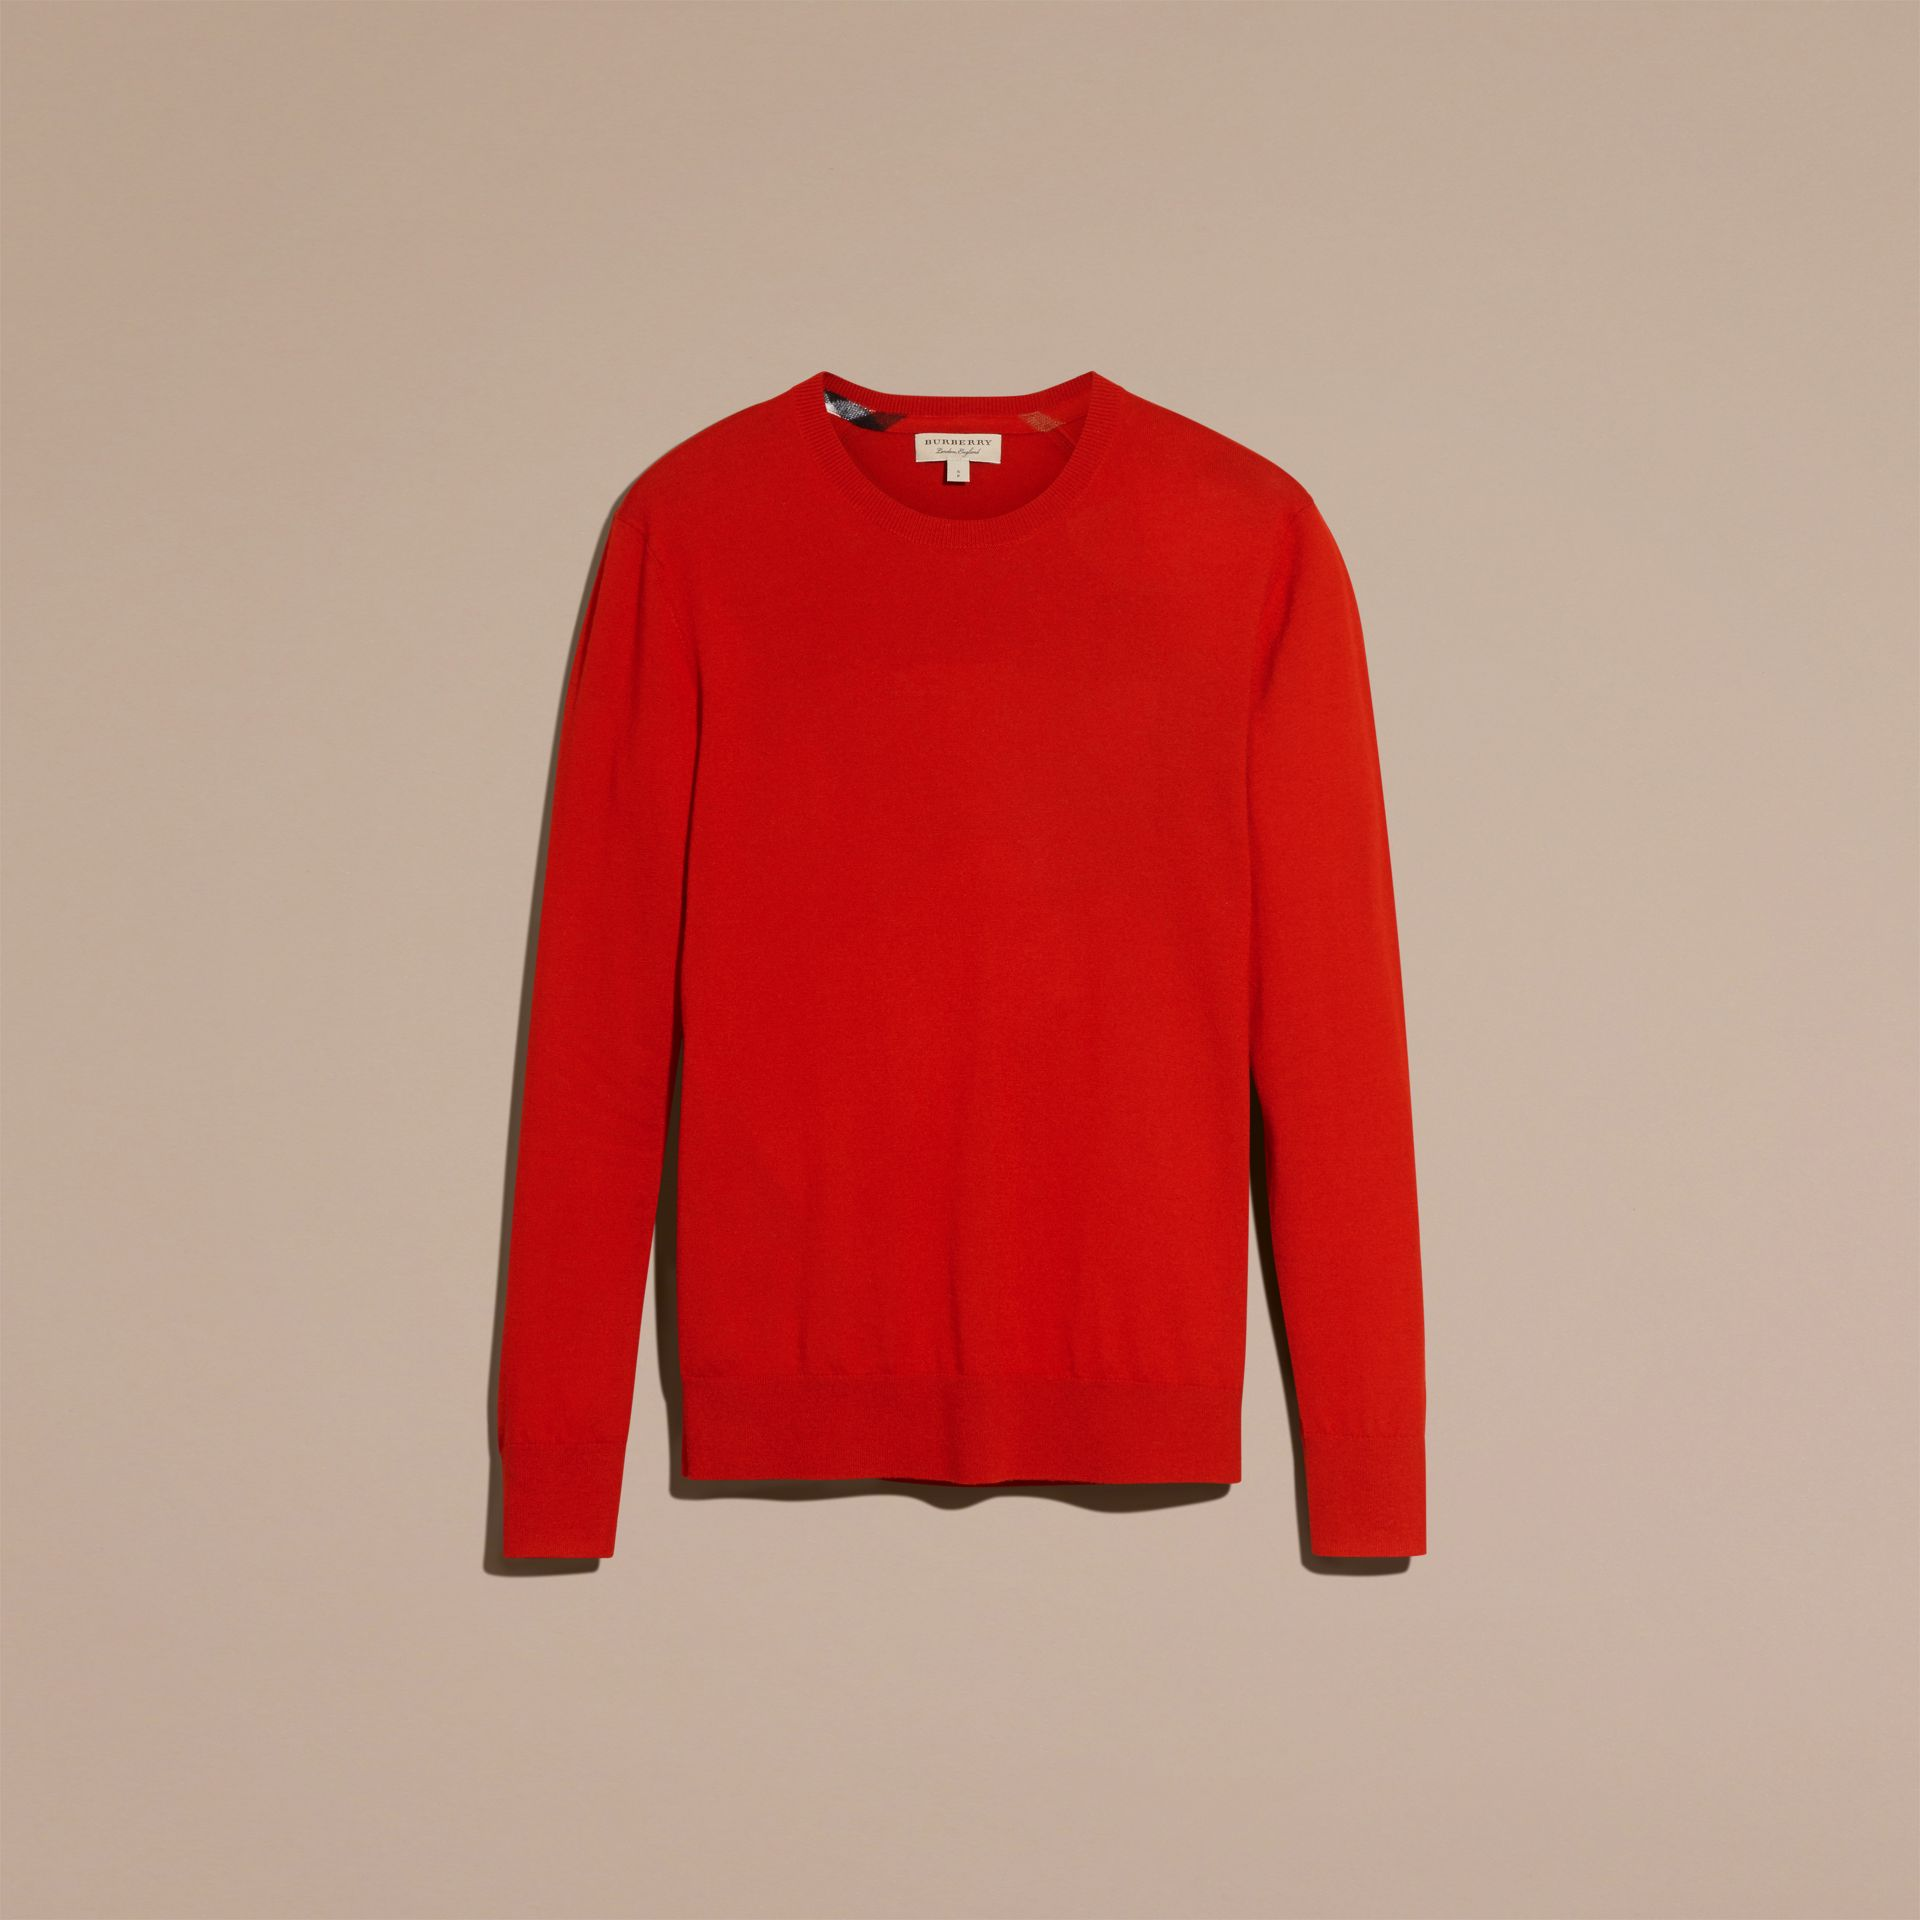 Parade red Lightweight Crew Neck Cashmere Sweater with Check Trim Parade Red - gallery image 4